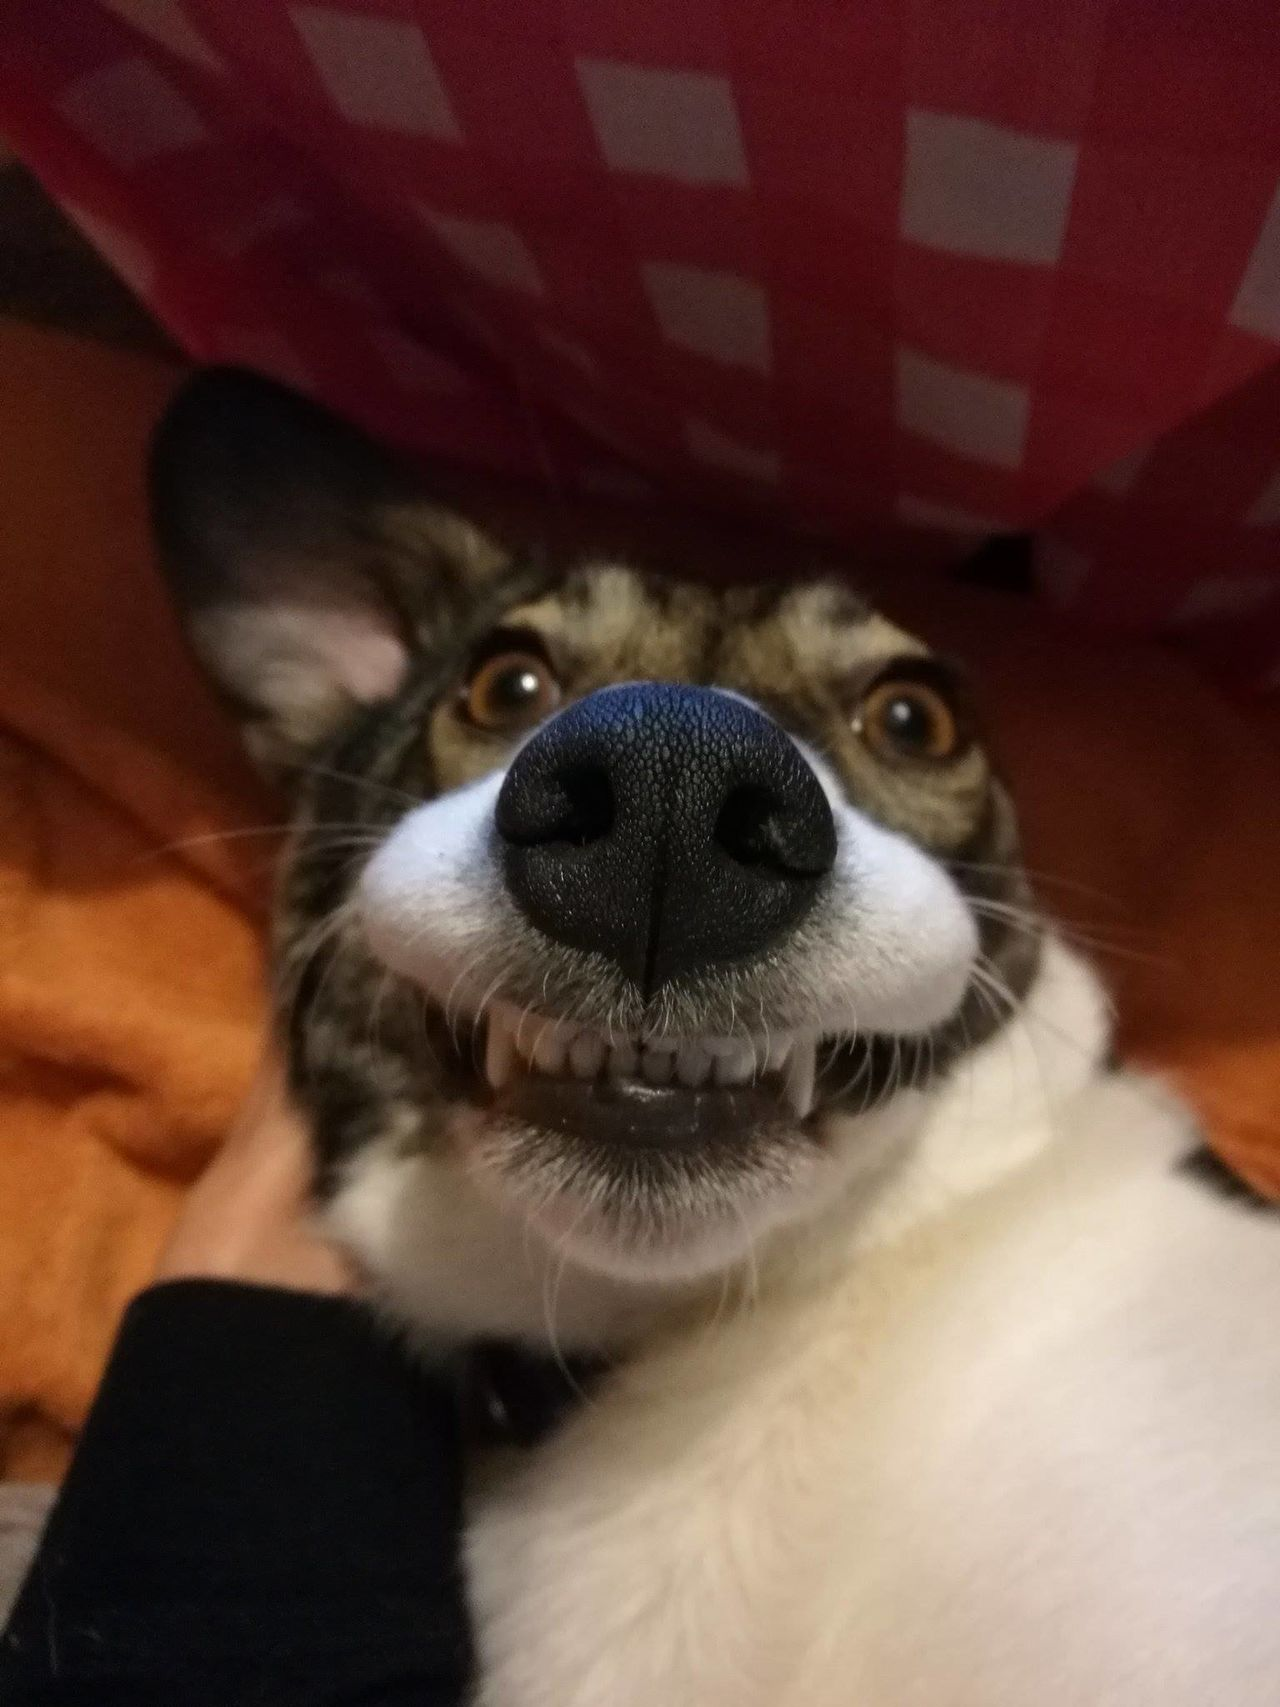 Animal Themes Boston Terrier Close-up Cute Pets Day Dog Domestic Animals Funny Dog Funny Faces Indoors  Looking At Camera Mammal No People Nose One Animal Pets Portrait Red Surprised Teeth